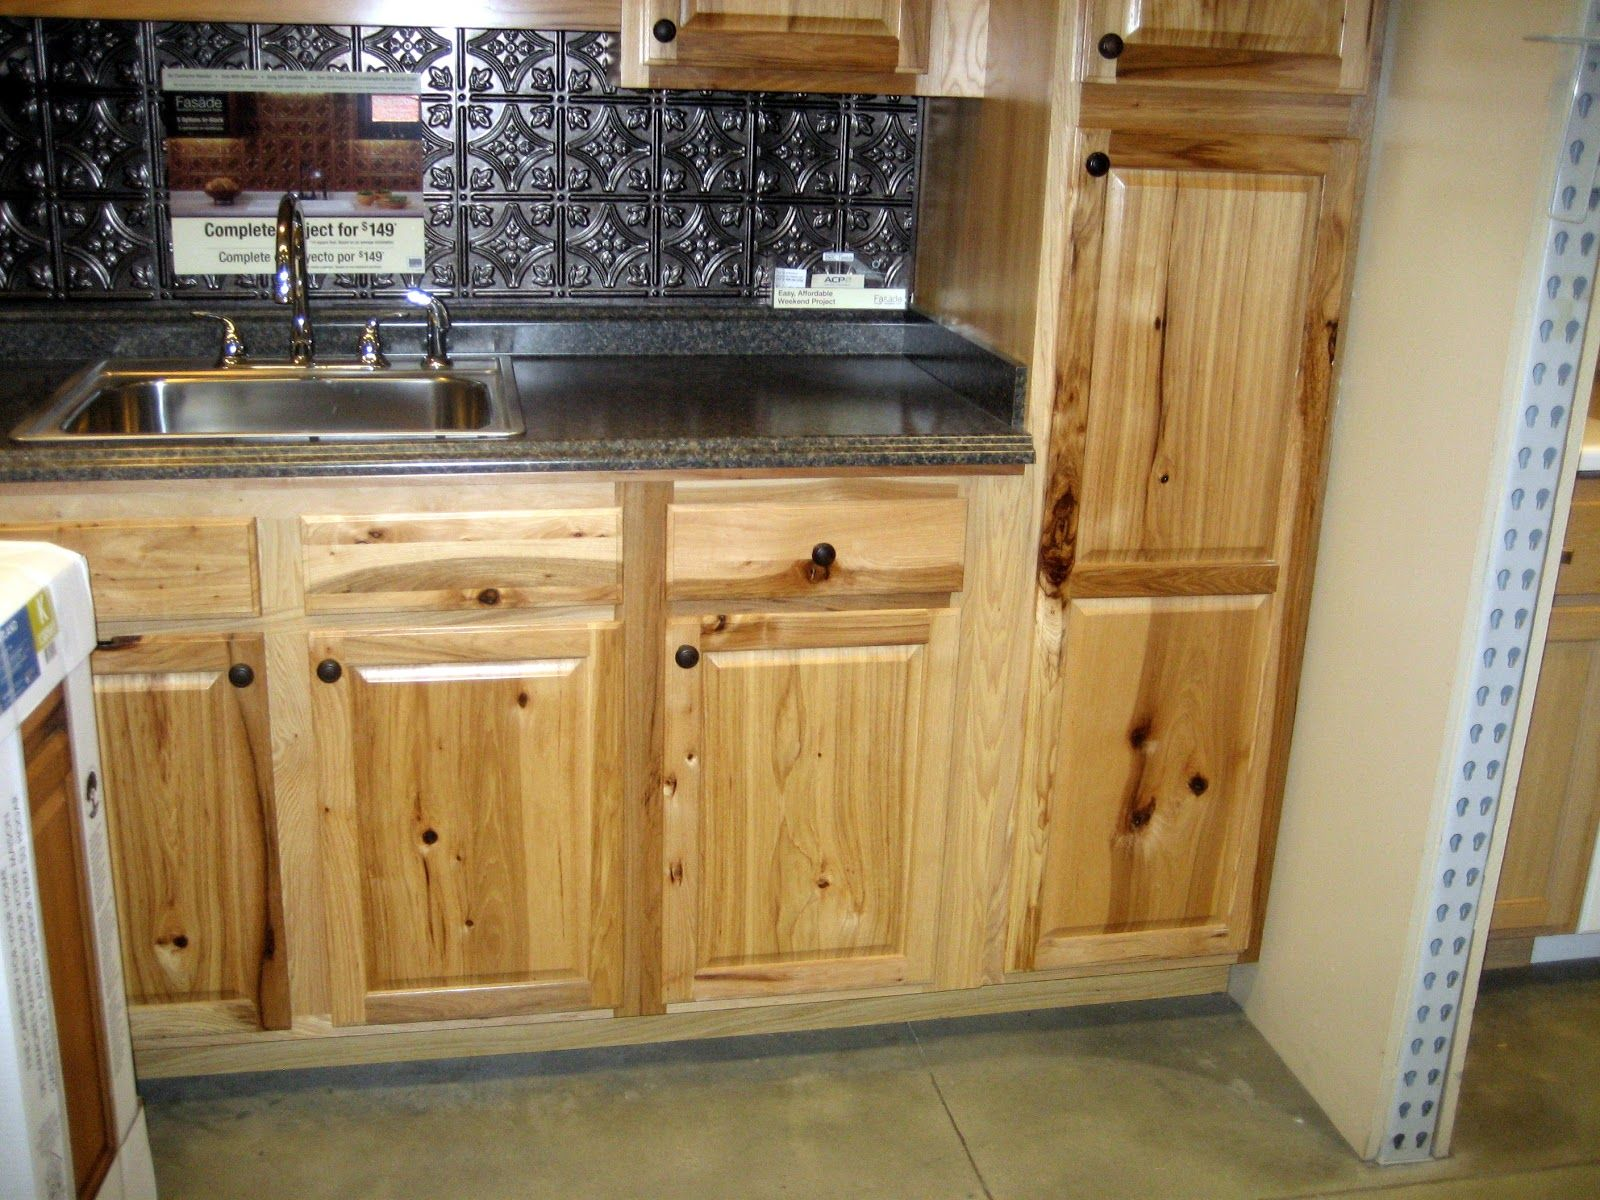 Denver Hickory Kitchen Cabinets Rustic Hickory Cabinets With Black Countertop And Chrome